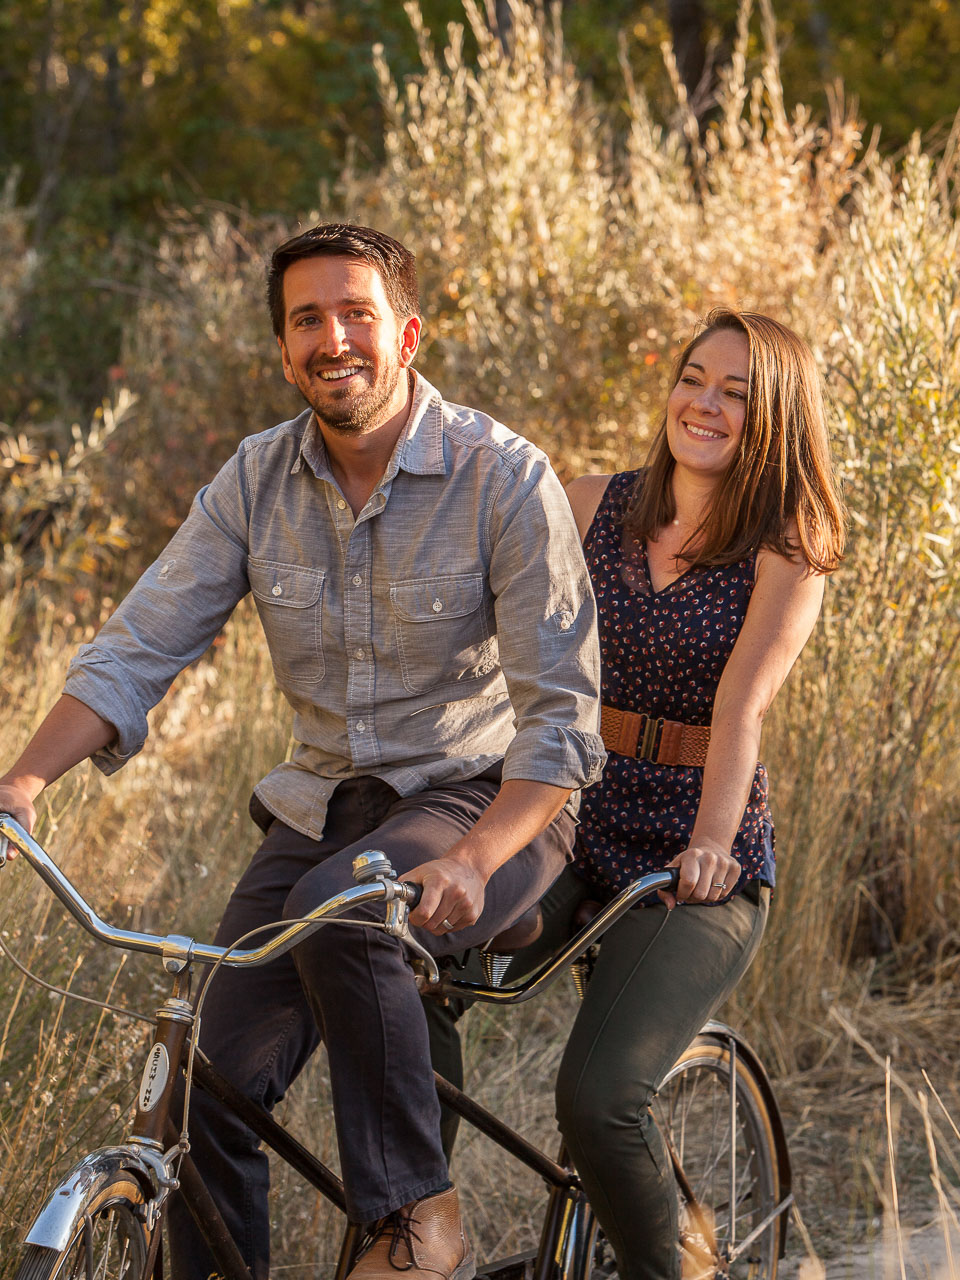 Mark and Kelly on a tandem bicycle